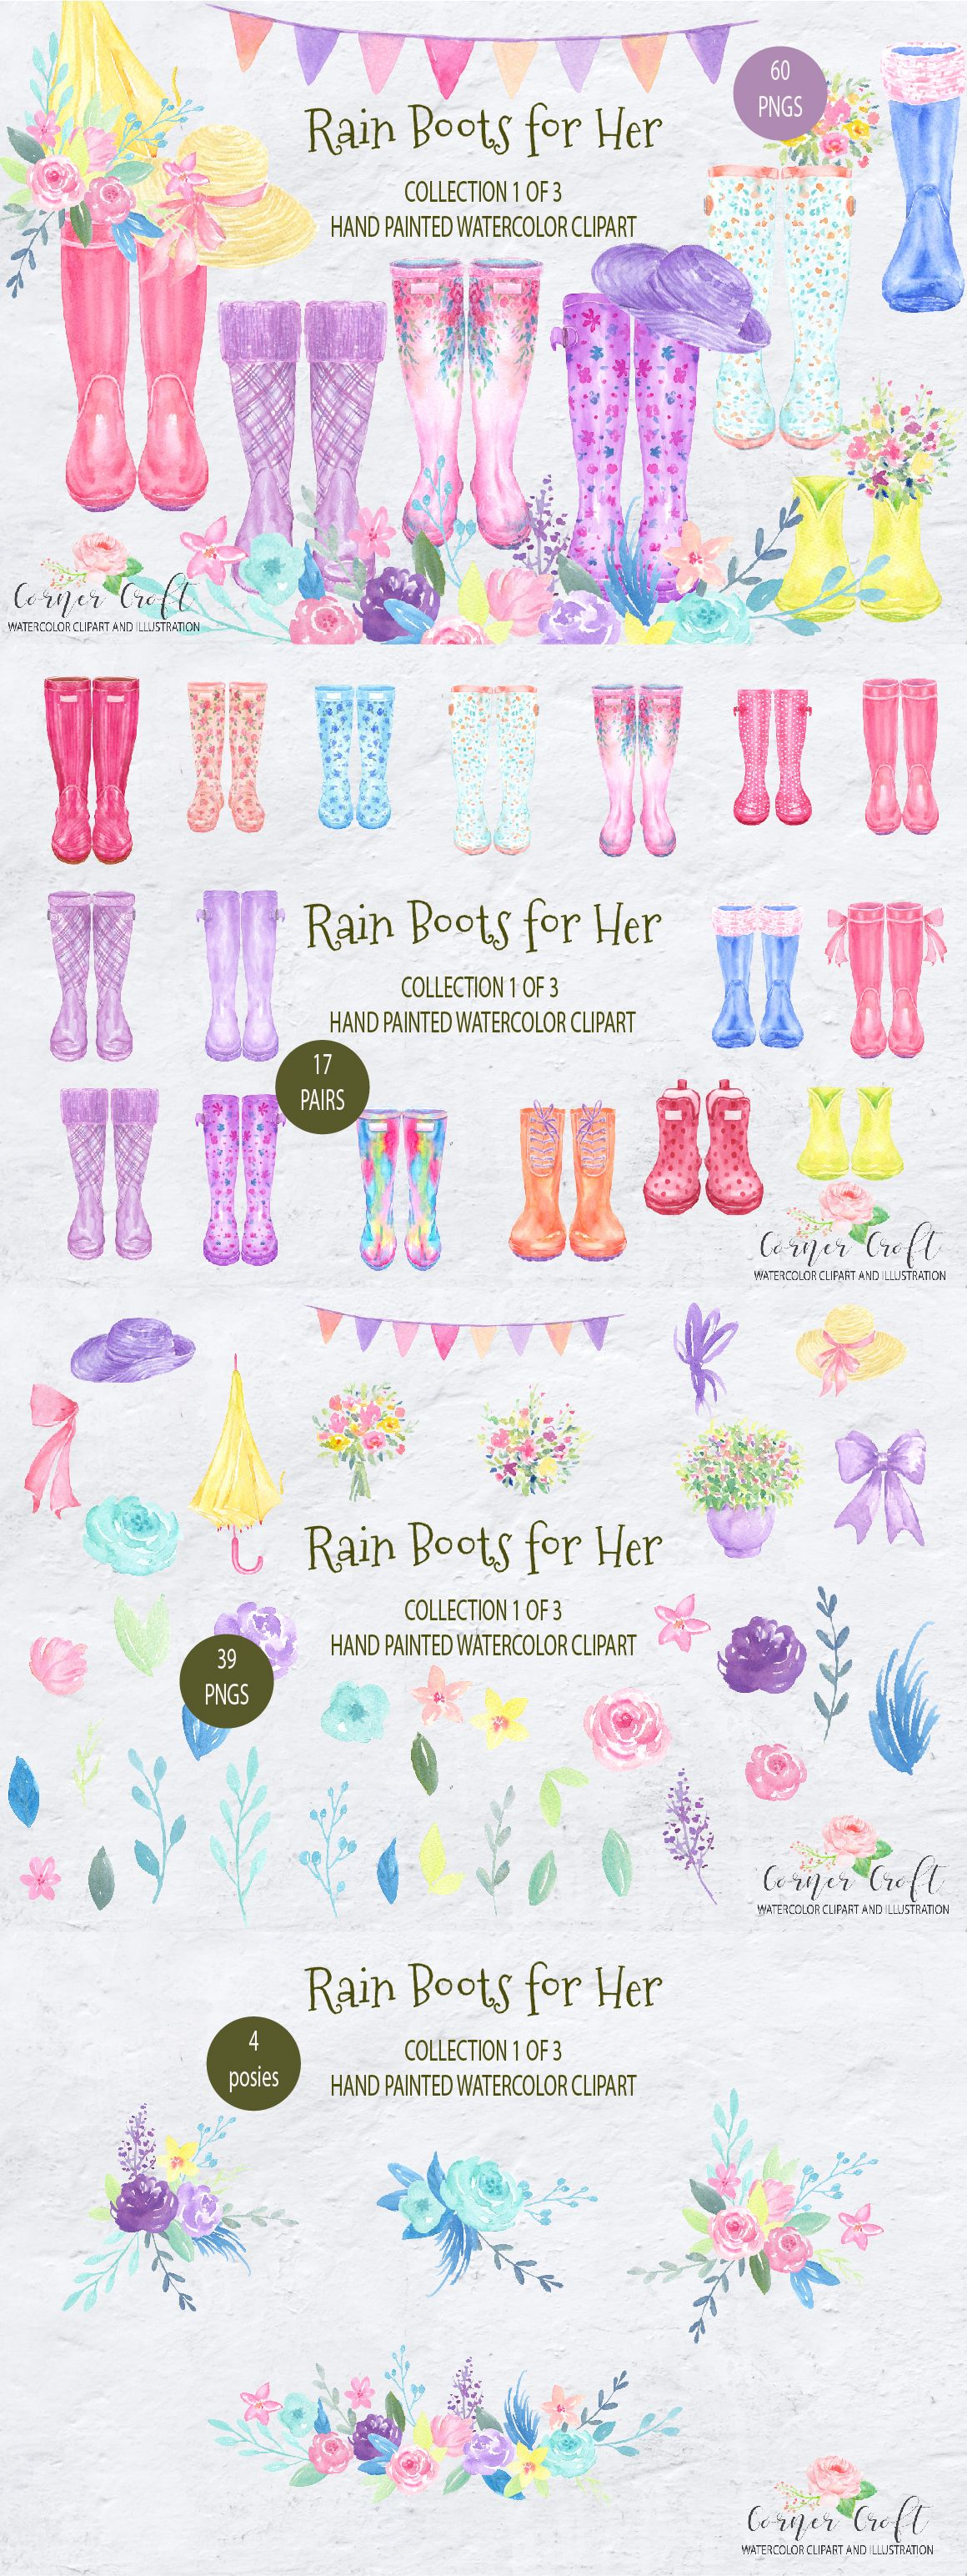 Watercolor Rain Boots For Her Floral Wellington Boots Rubber